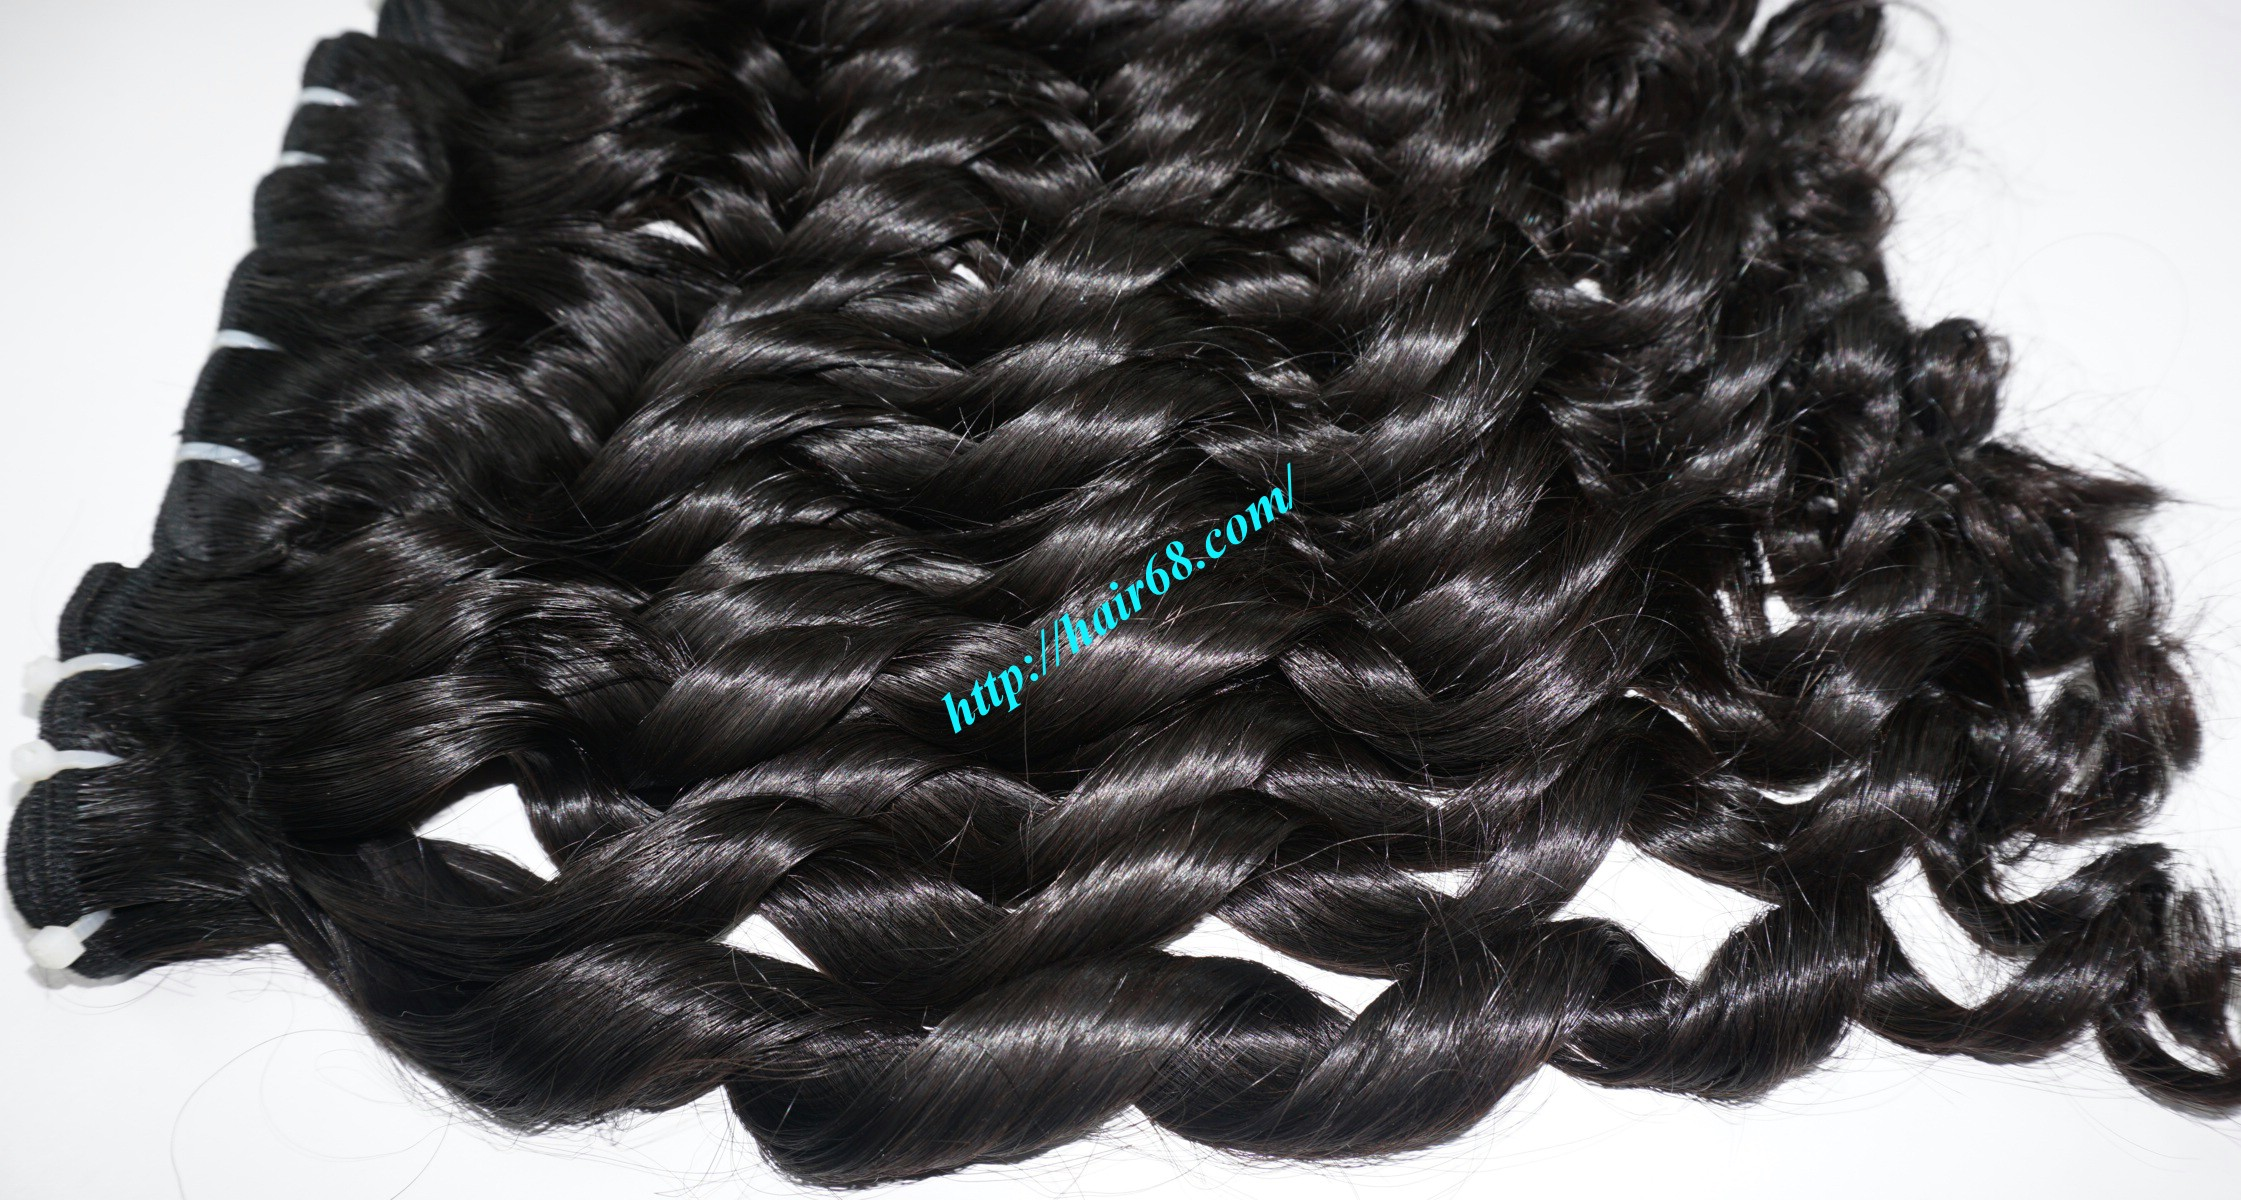 20 inch - Weave Loose Curly Hair Extensions - Double Drawn 9